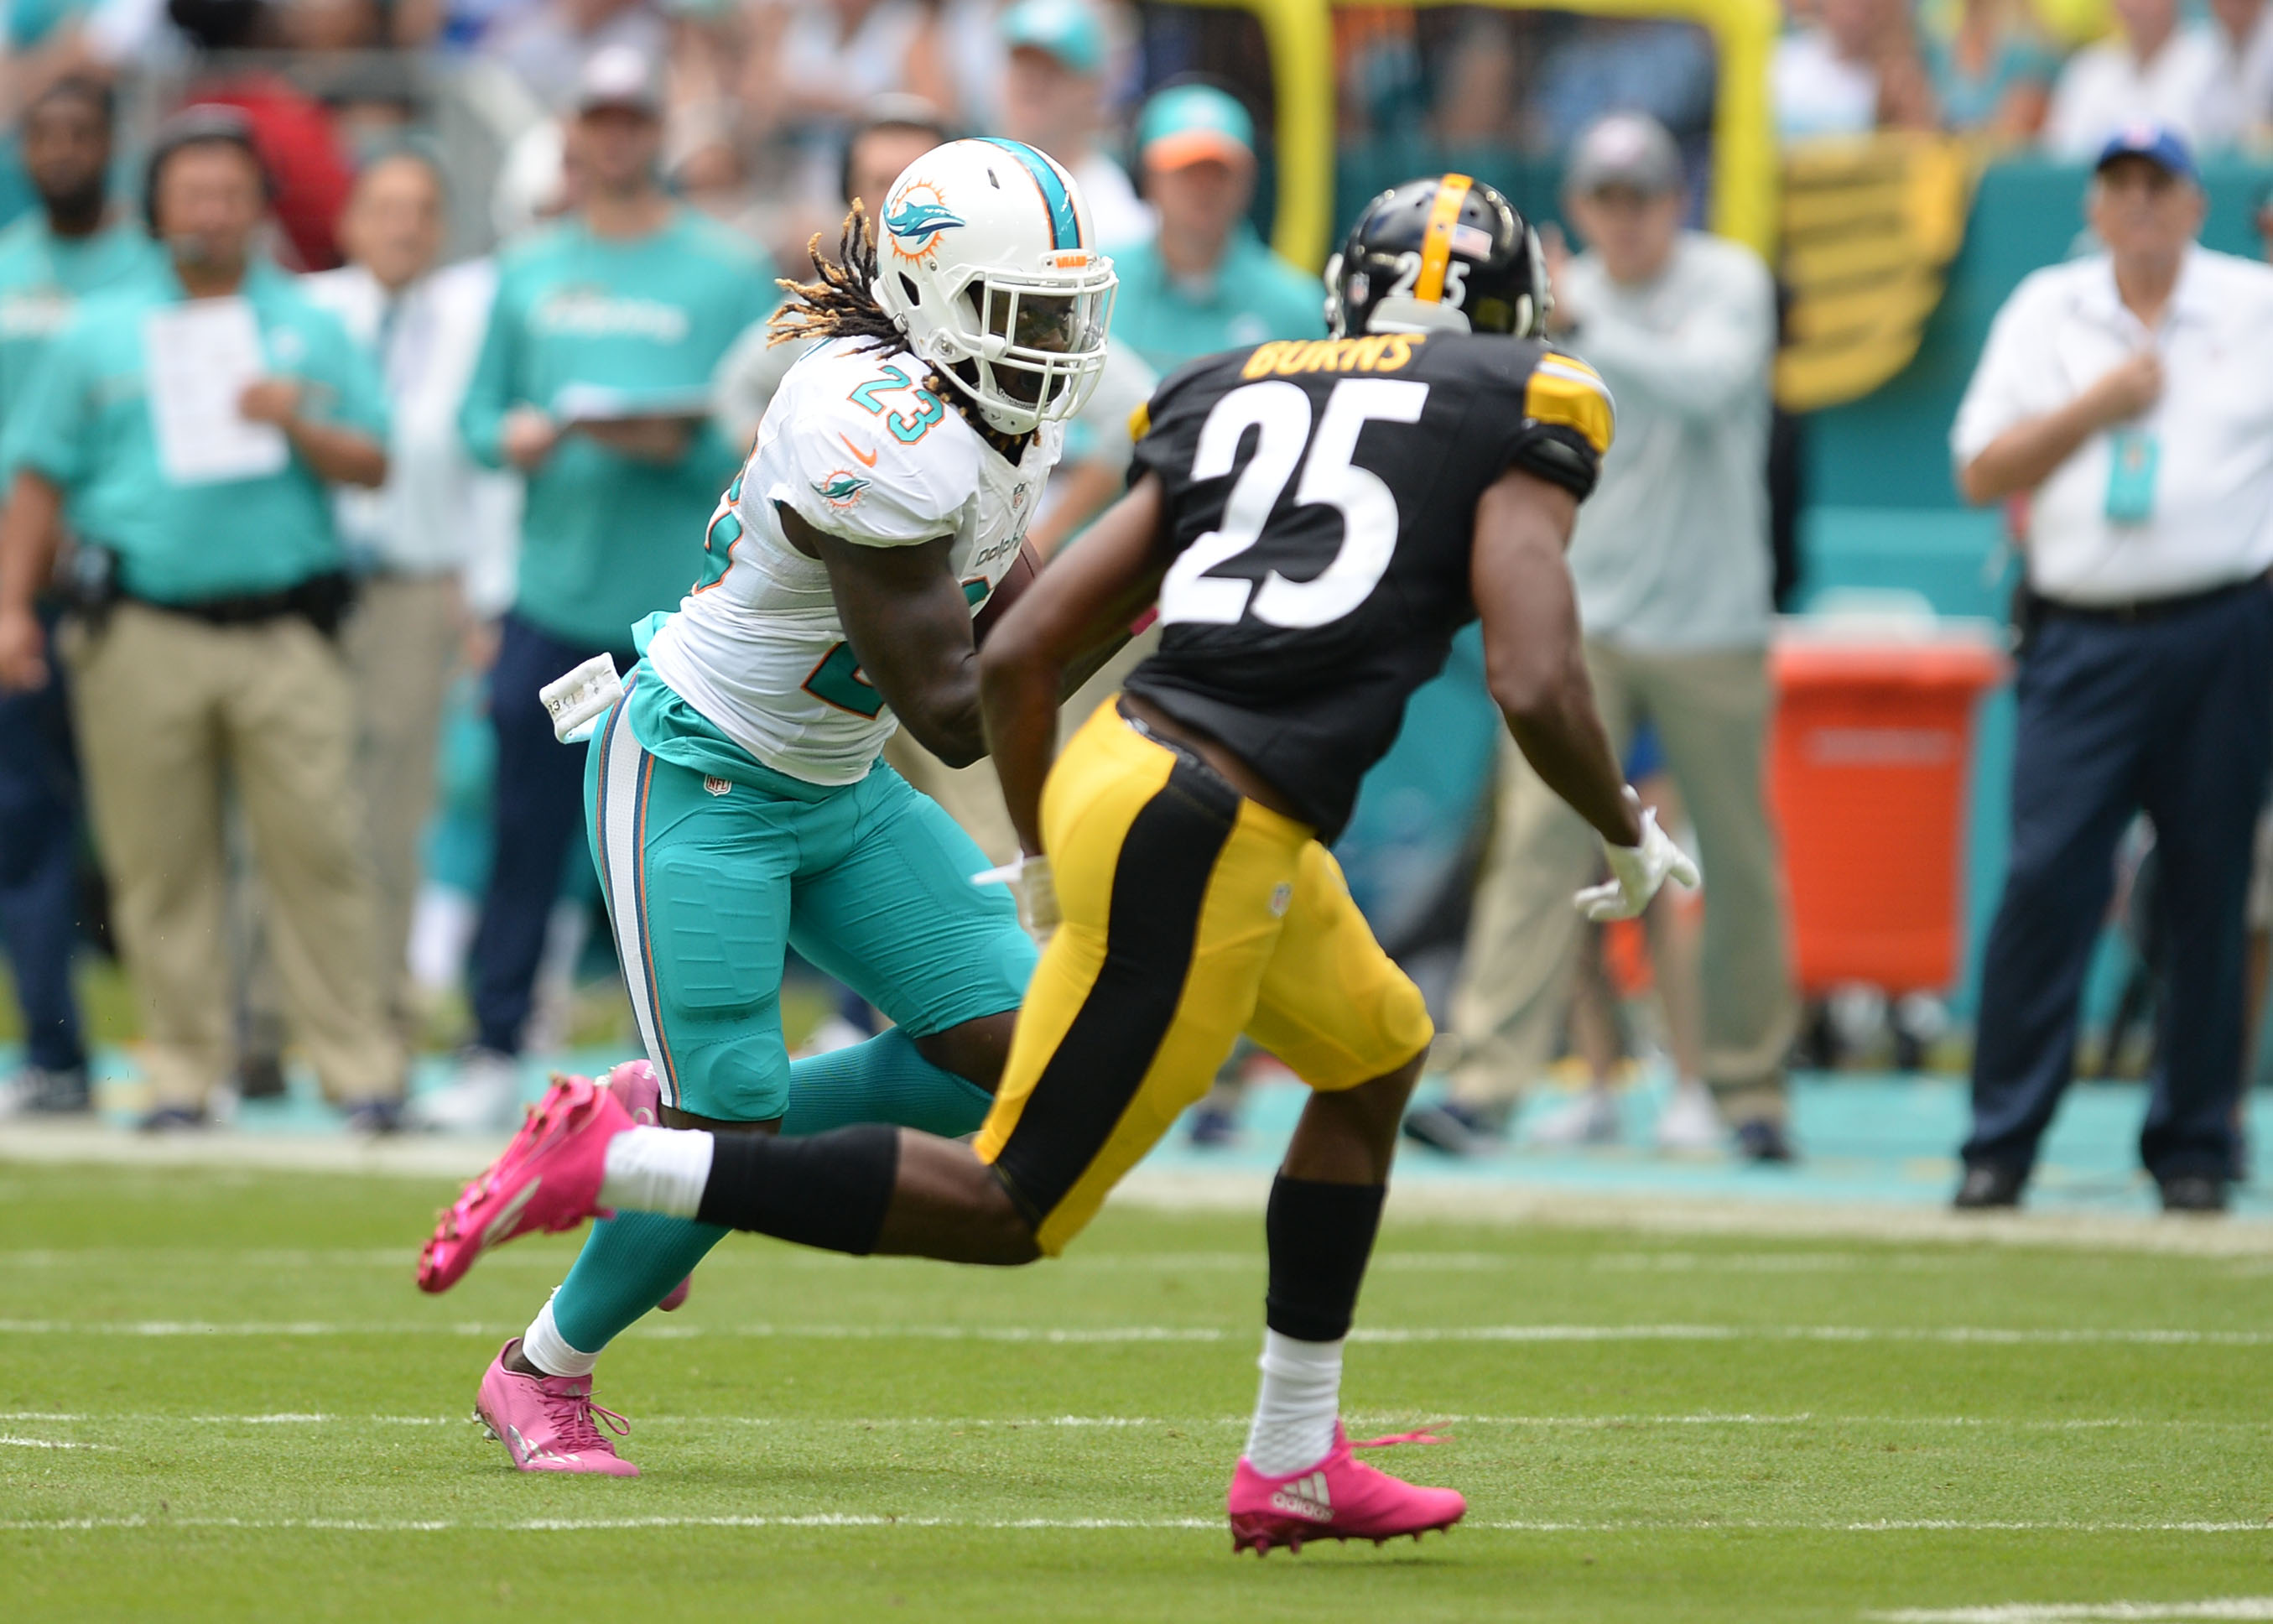 NFL: OCT 16 Steelers at Dolphins